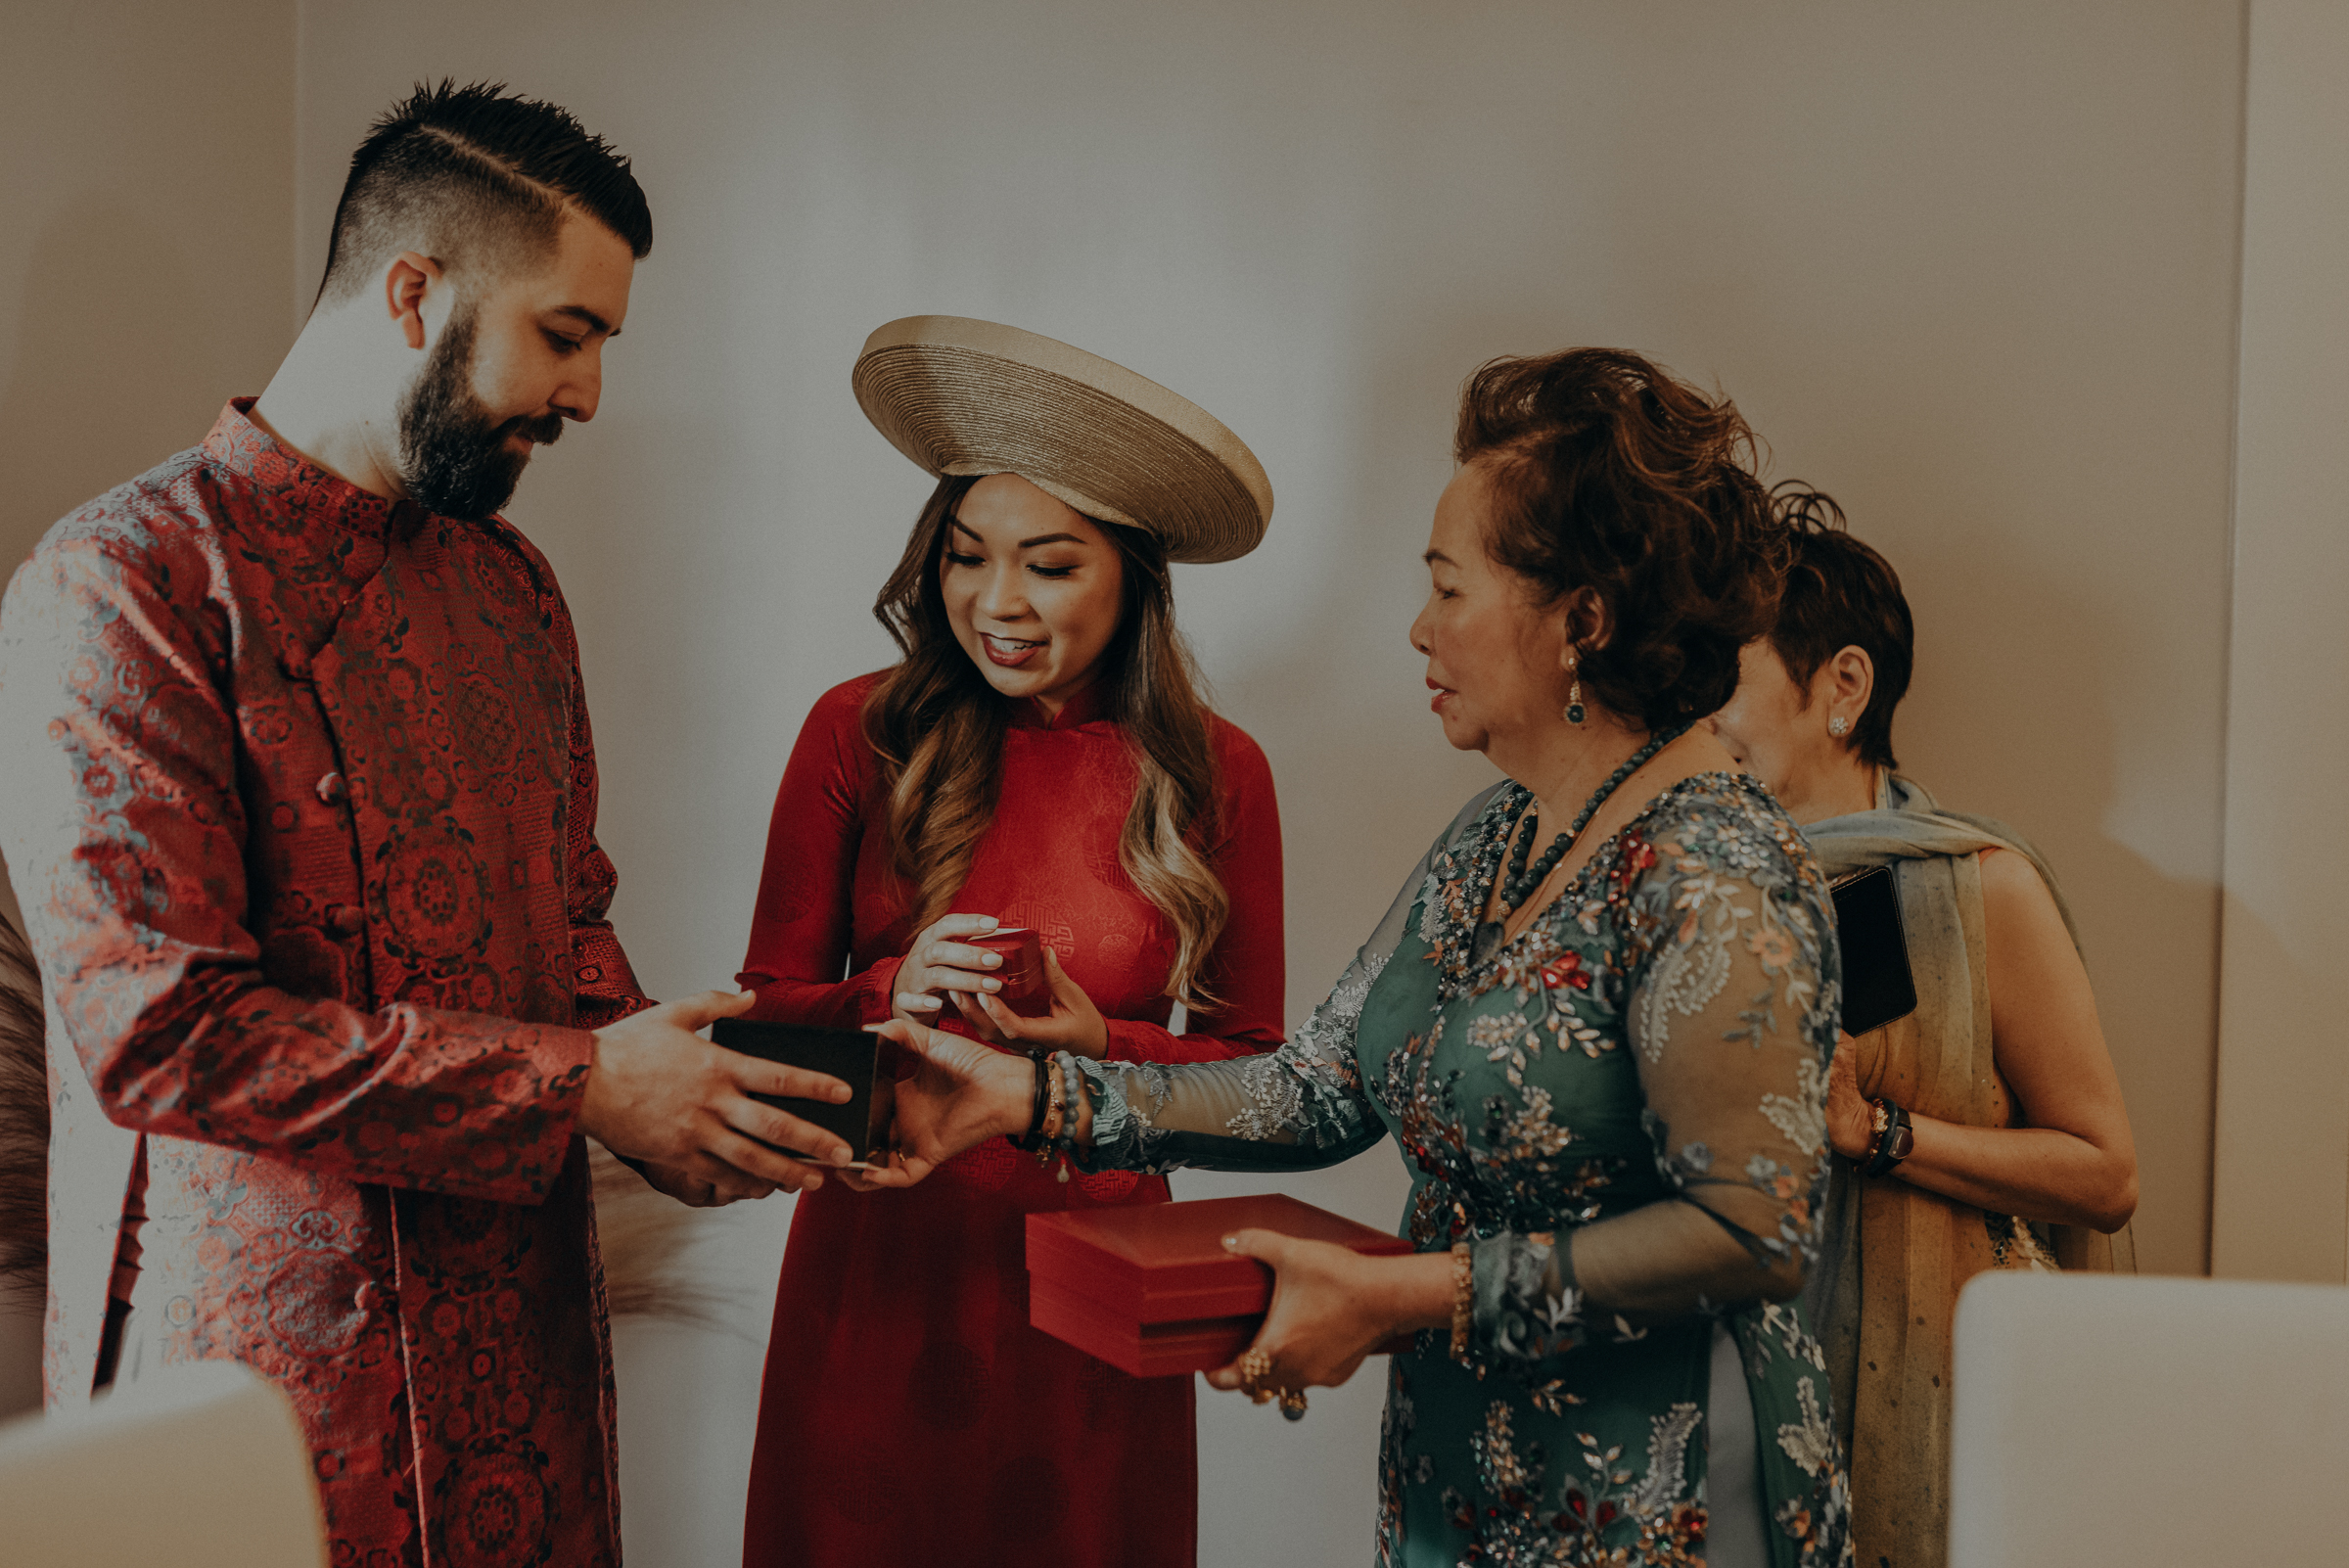 Los Angeles Wedding Photographer - IsaiahAndTaylor.com - The Ebell of Long Beach Wedding - Traditional Vietnamese tea ceremony-054.jpg